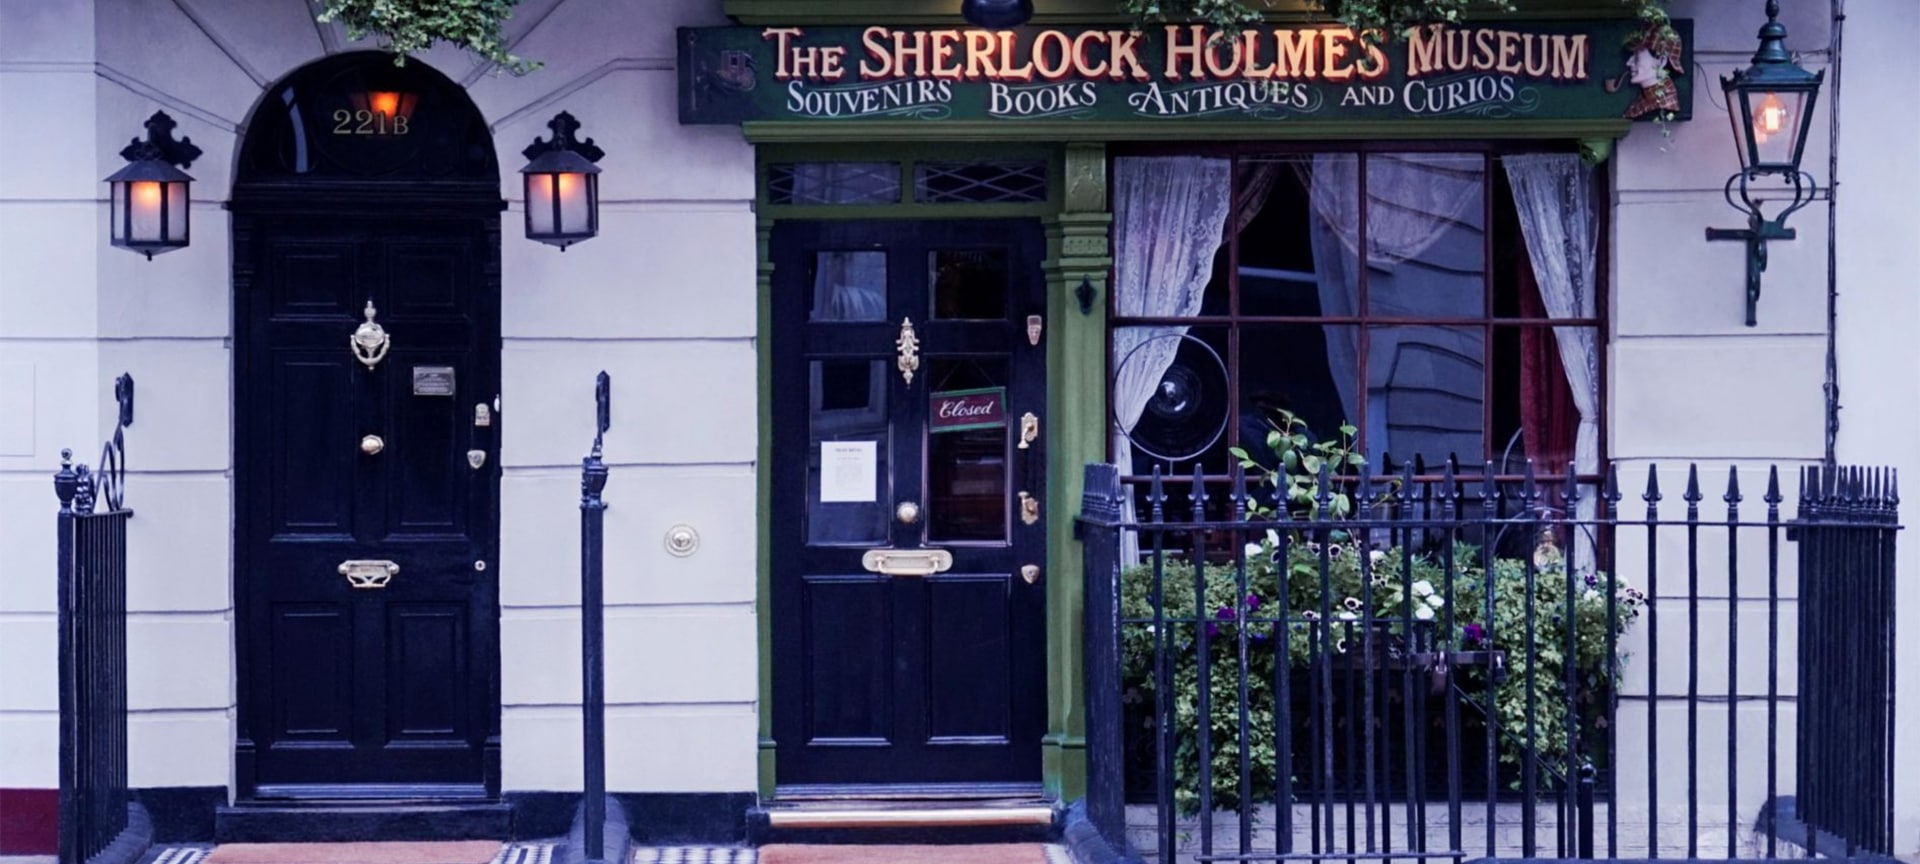 Escape the London bustle, step back in time, and enter a world of gas light, Victorian curiosities, and many of the objects, letters and characters from Sherlock Holmes' most famous cases.